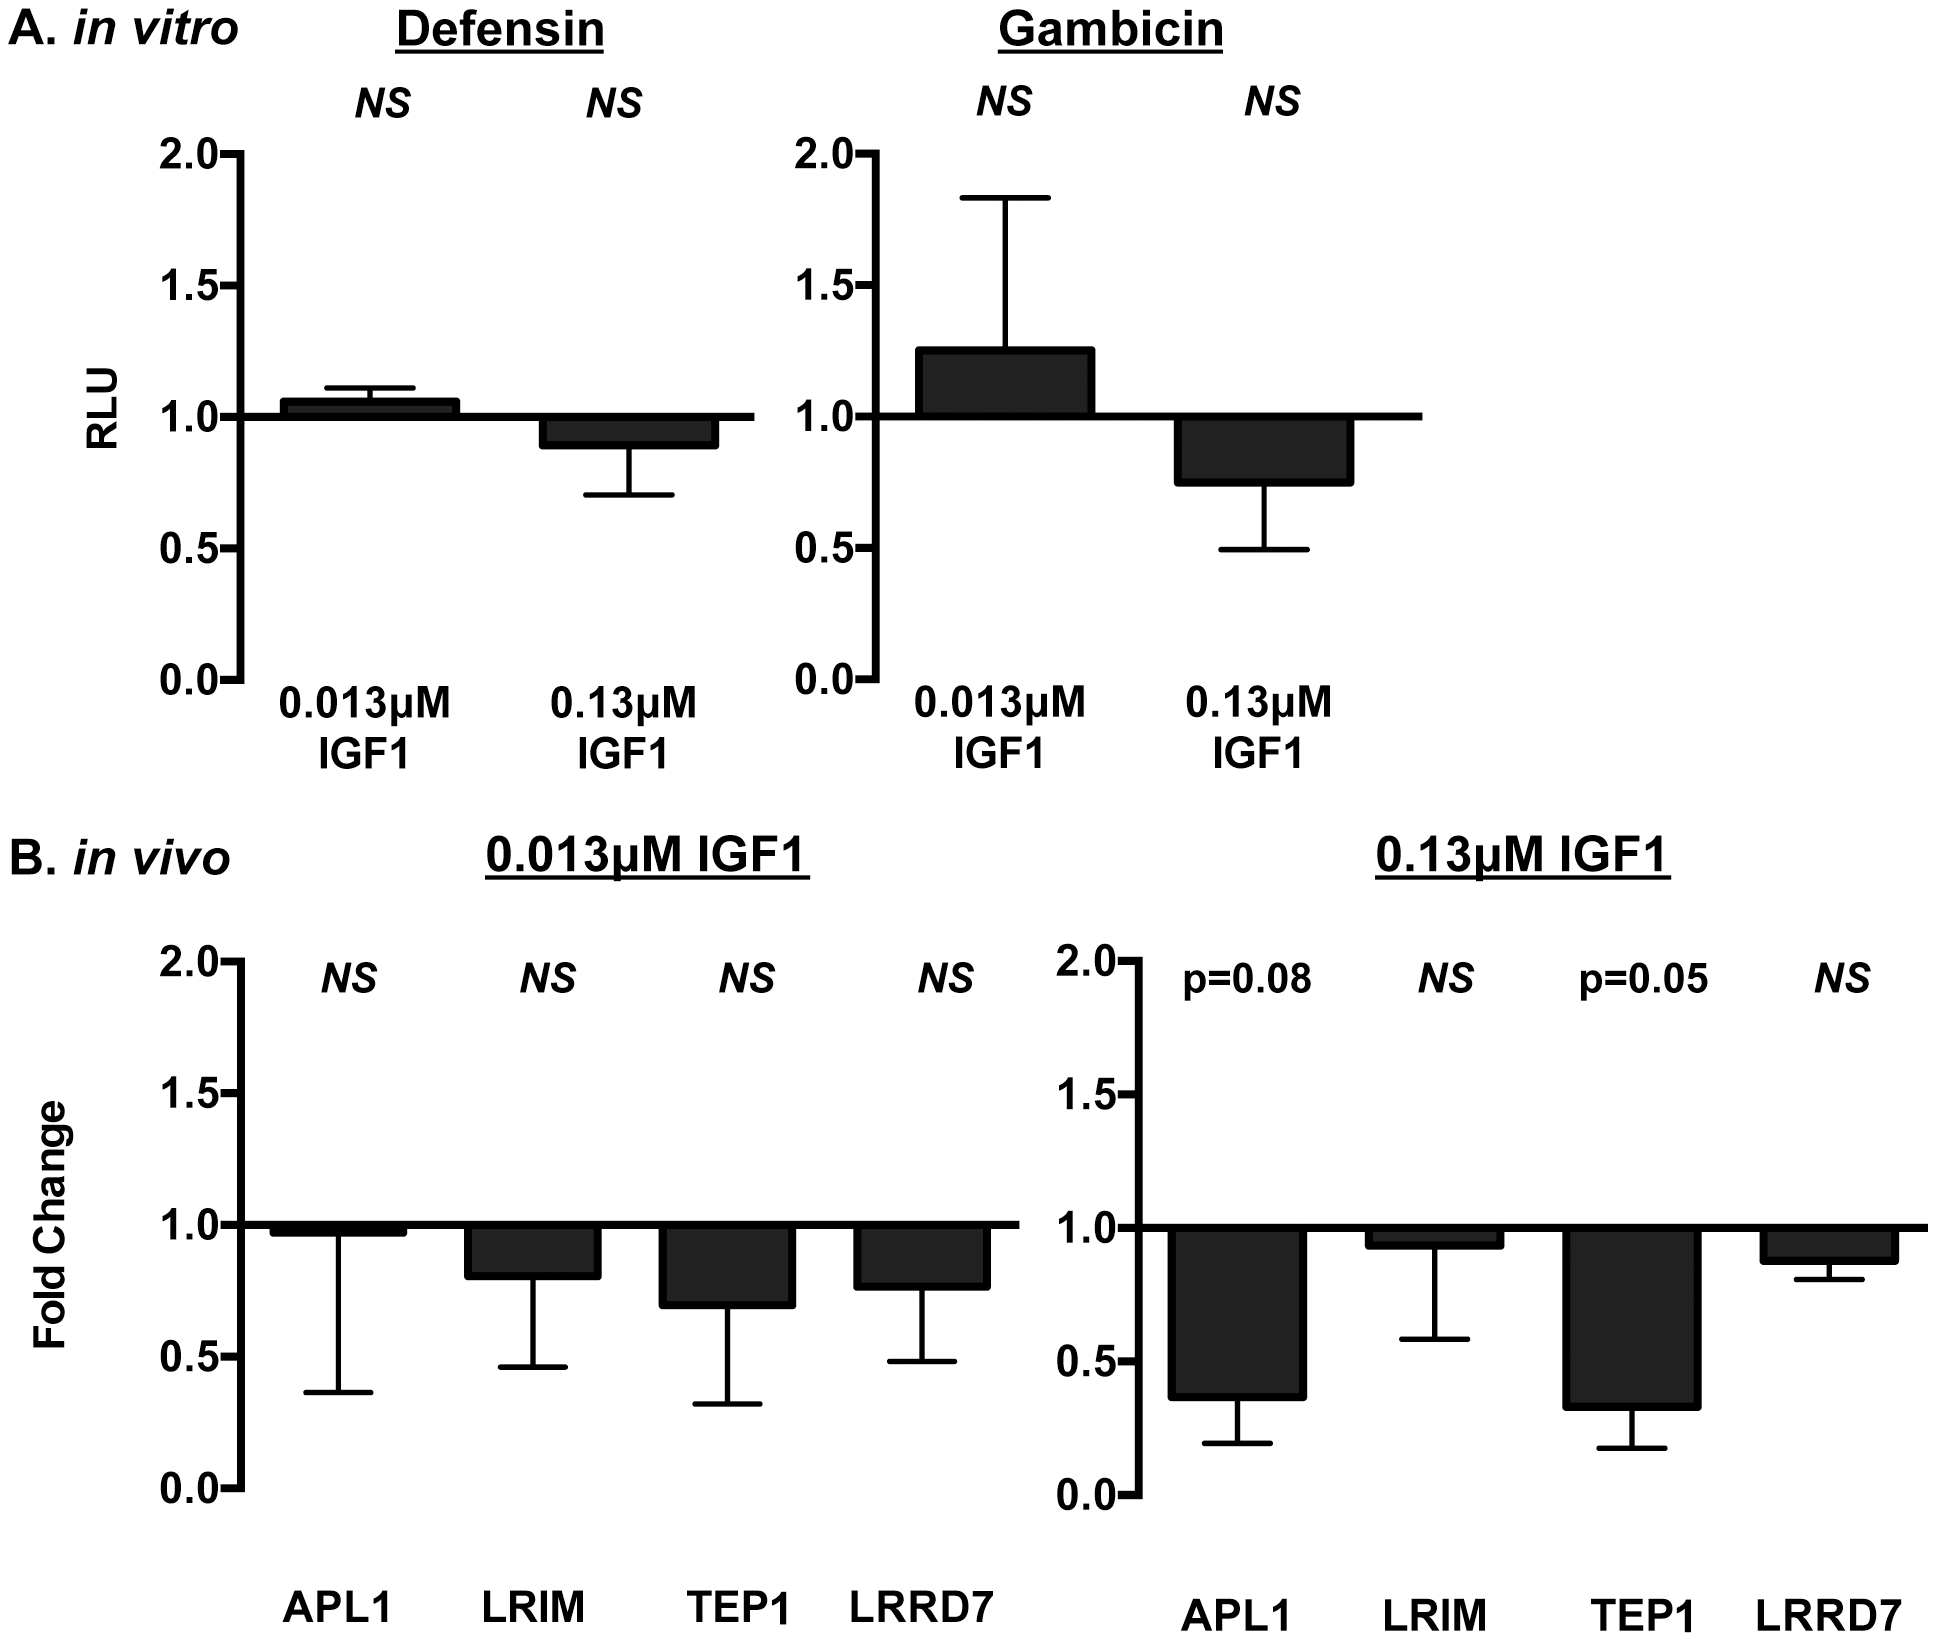 IGF1 did not induce prototypical NF-κB-dependent immune responses in <i>A. stephensi</i> cells <i>in vitro</i> (A) or <i>in vivo</i> (B).